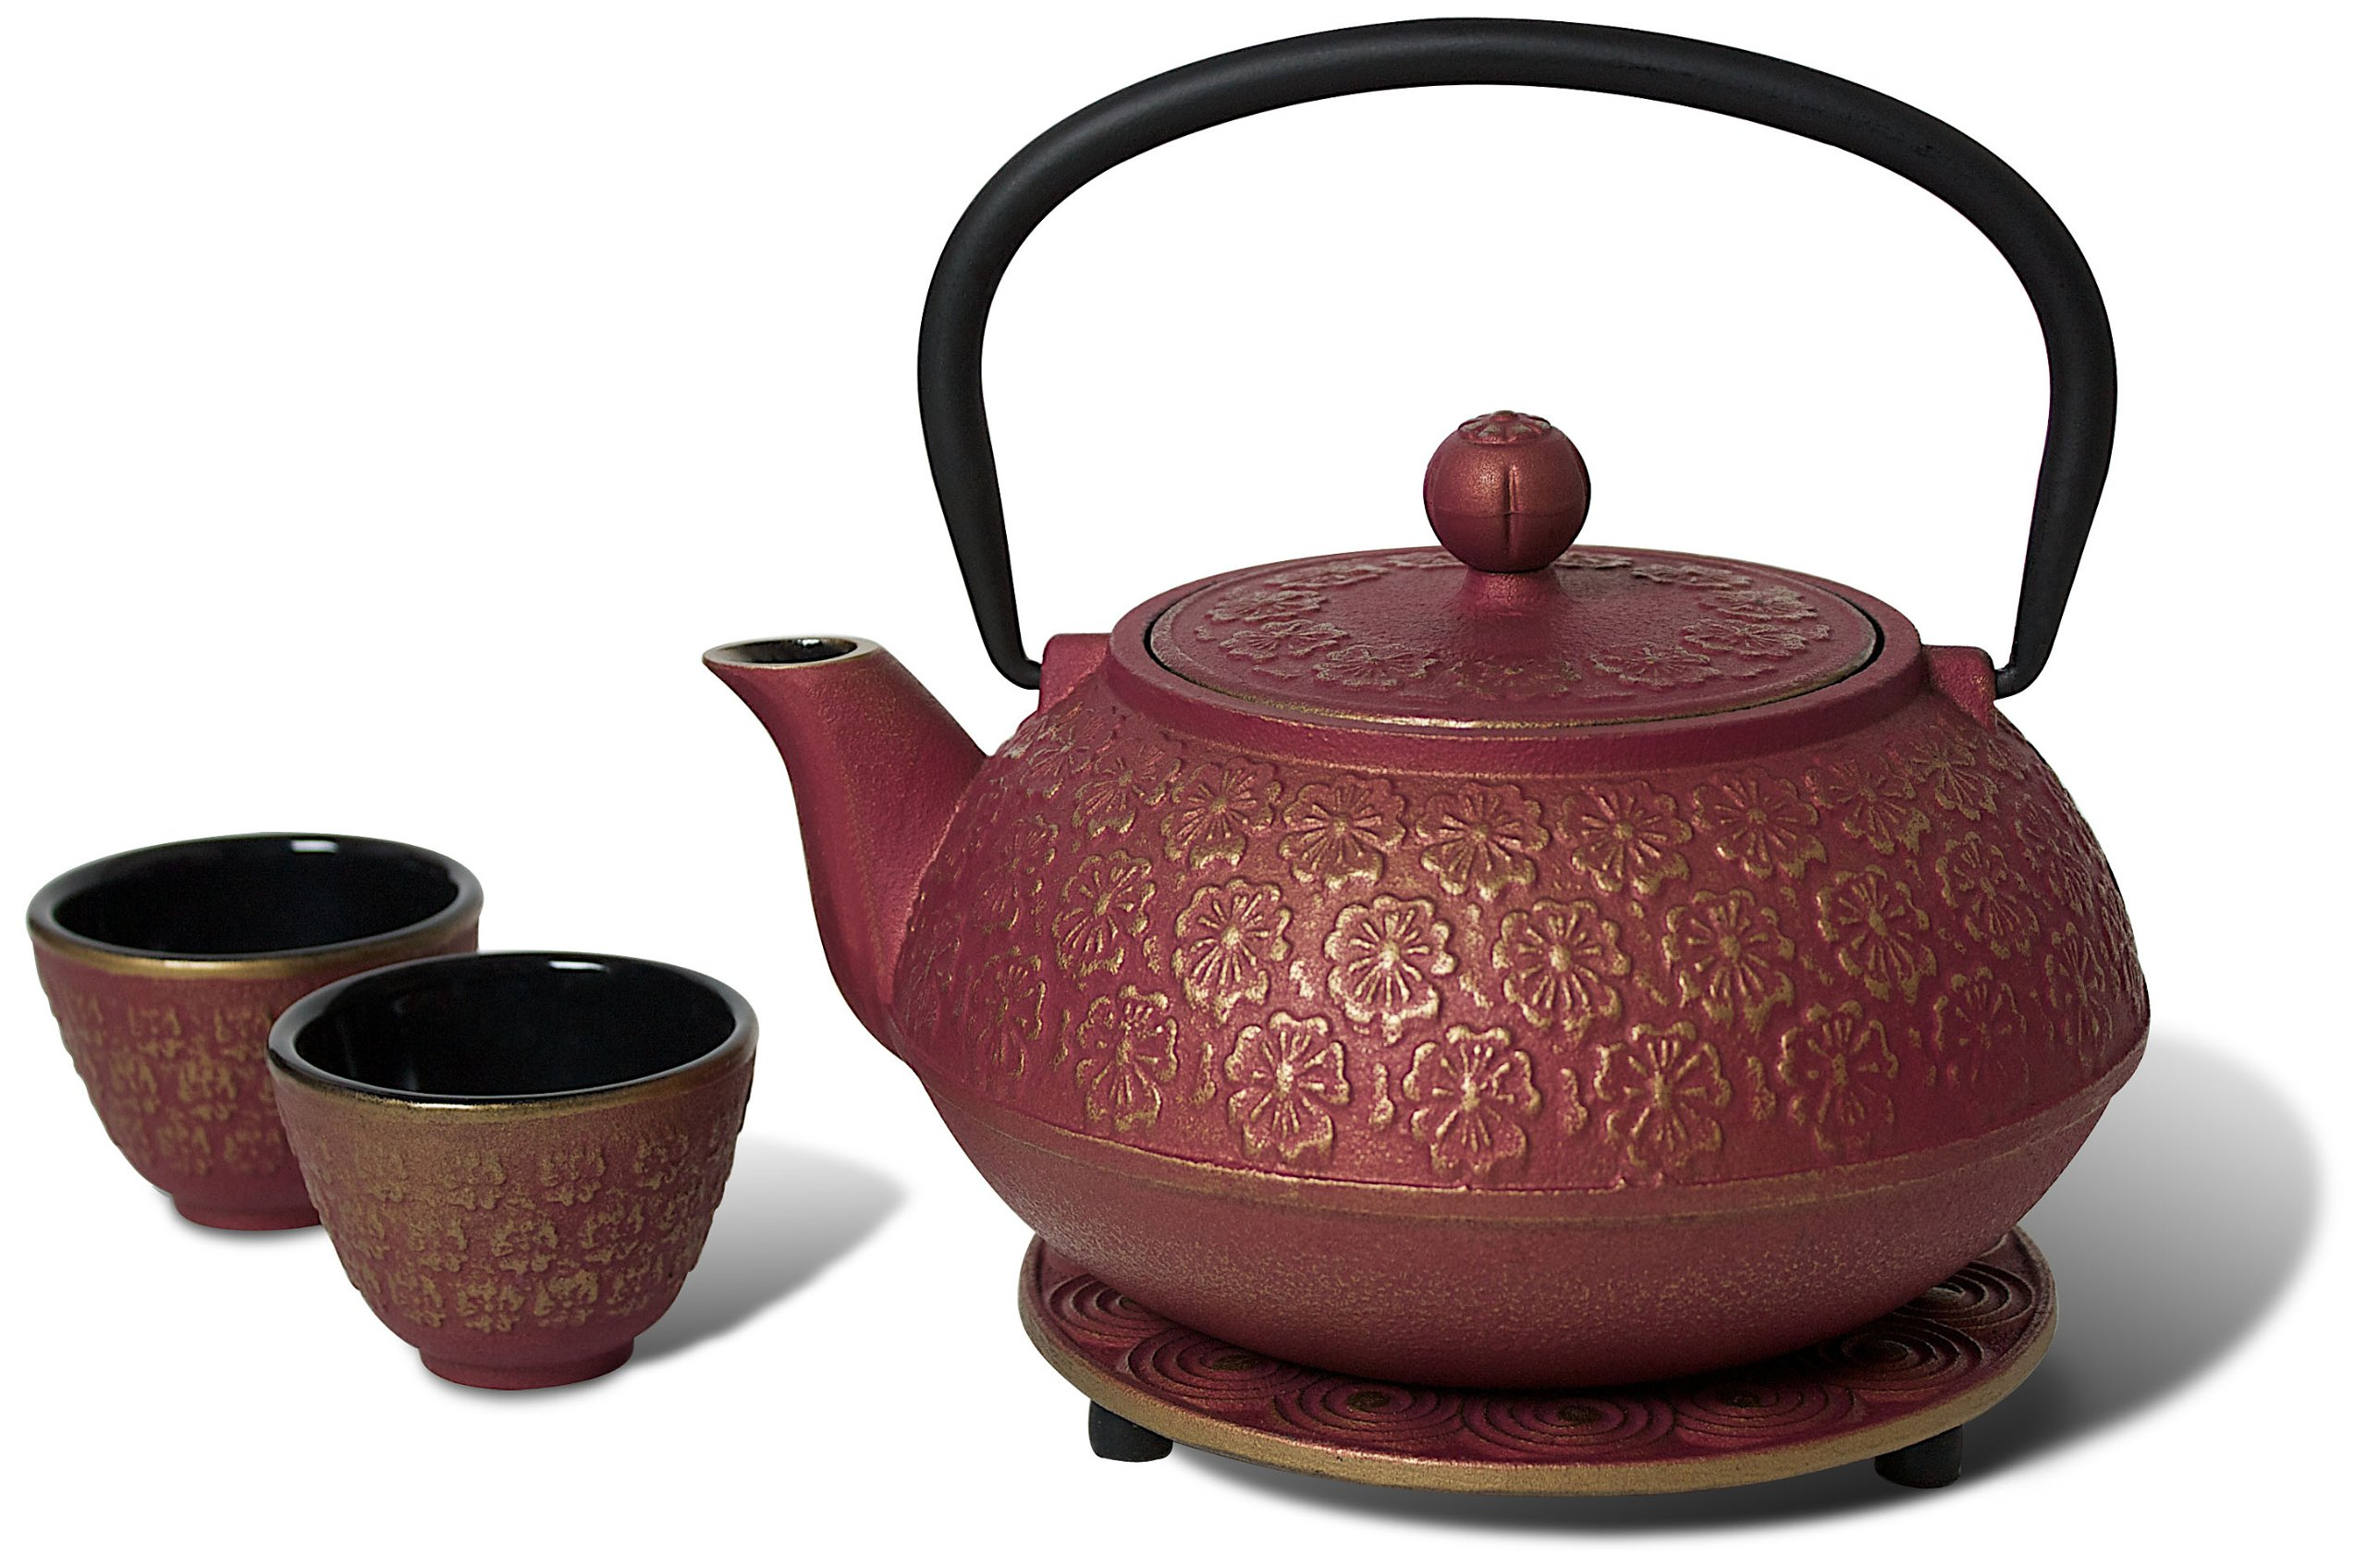 Miya Scarlet Blossom 34-Ounce Cast Iron Teapot and Teacup Set w/ Strainer and Trivet, Pink by MIYA